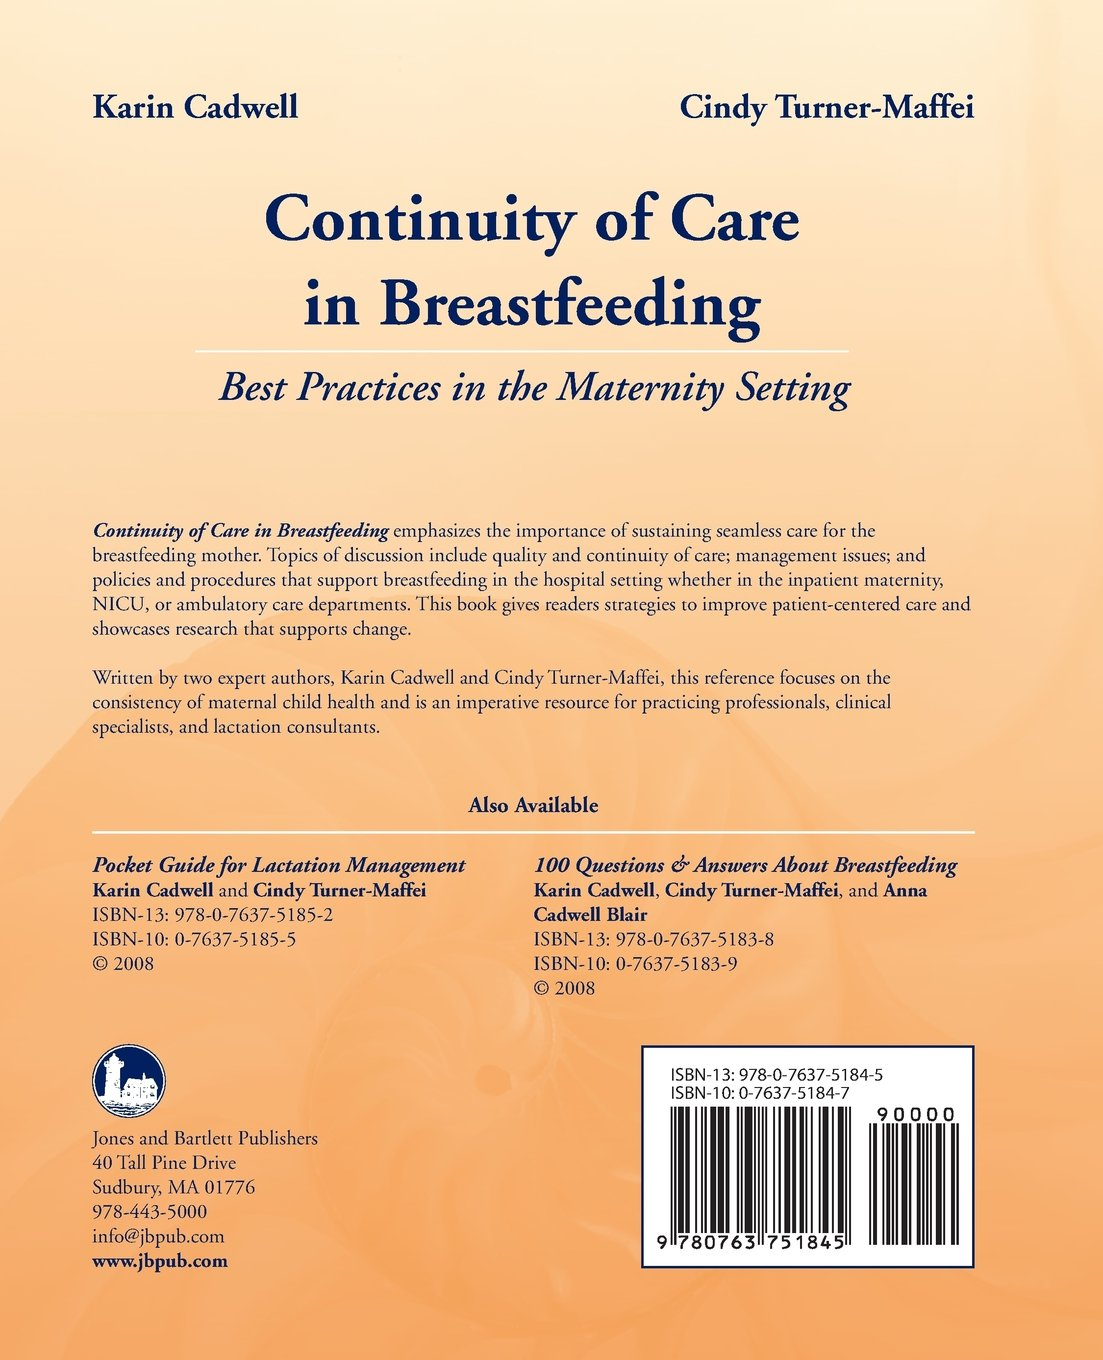 Continuity of Care in Breastfeeding: Best Practices in the Maternity Setting